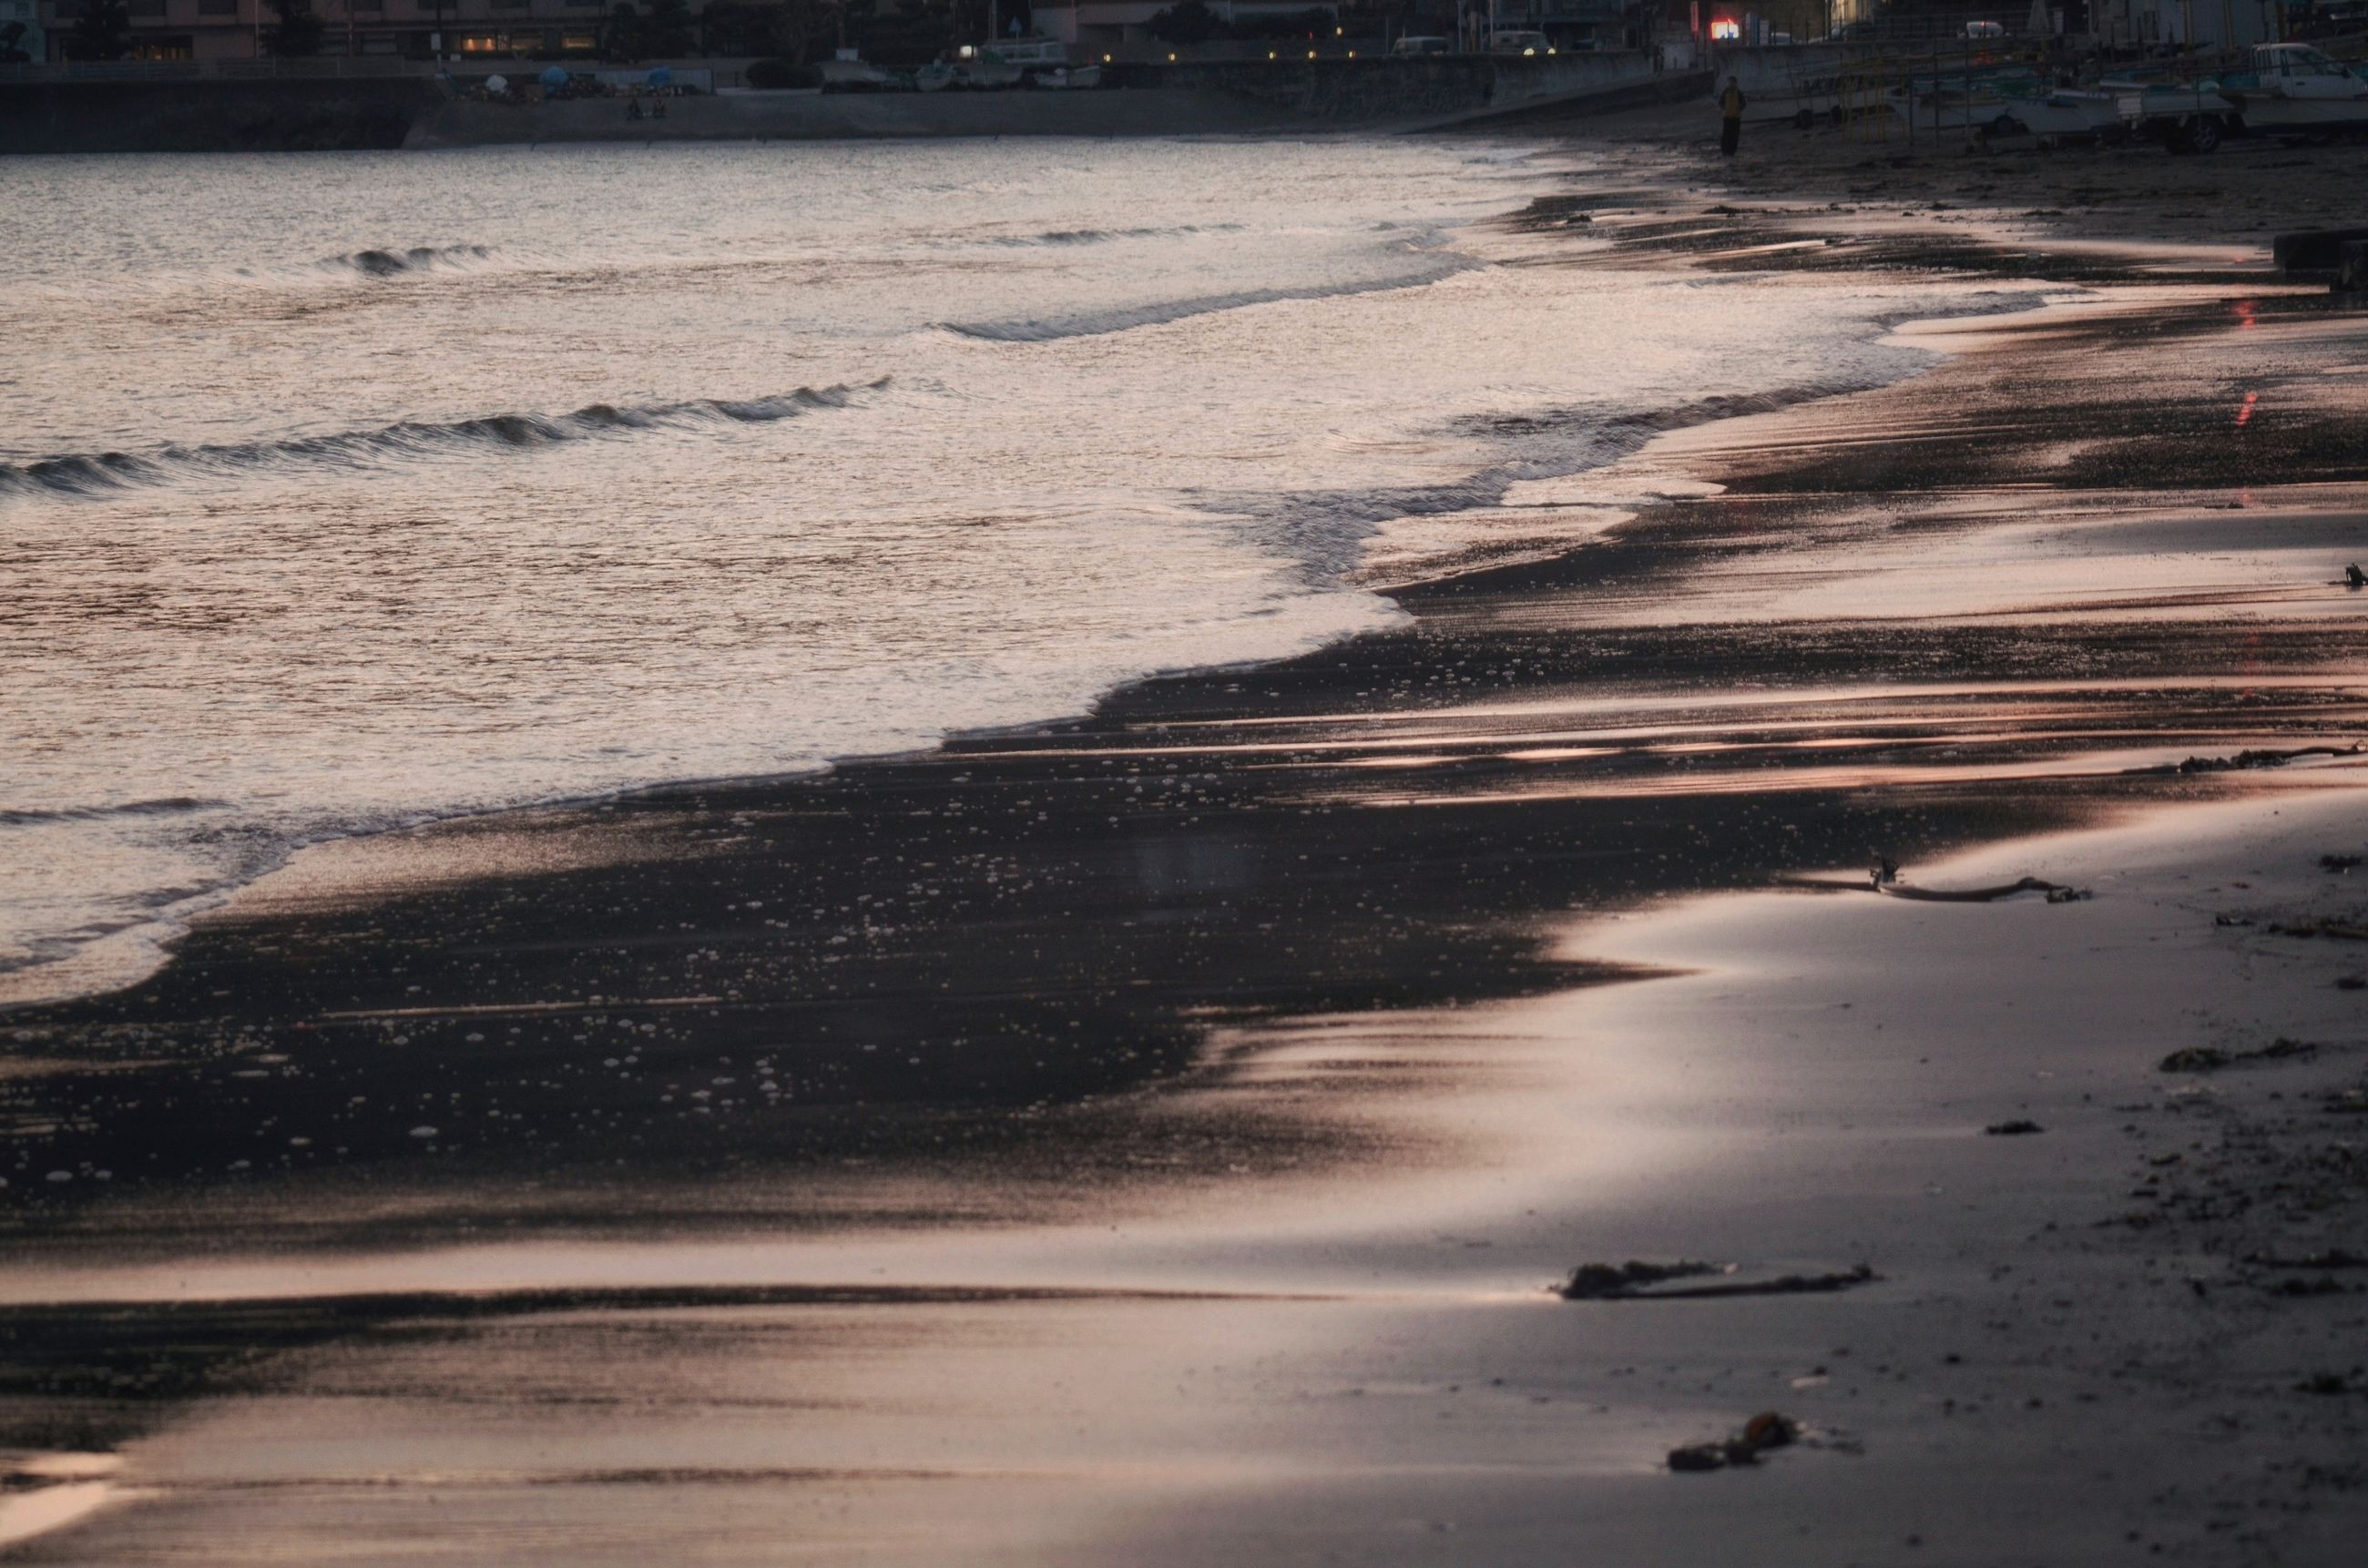 beach, nature, sand, sunlight, outdoors, shadow, water, beauty in nature, scenics, no people, landscape, day, backgrounds